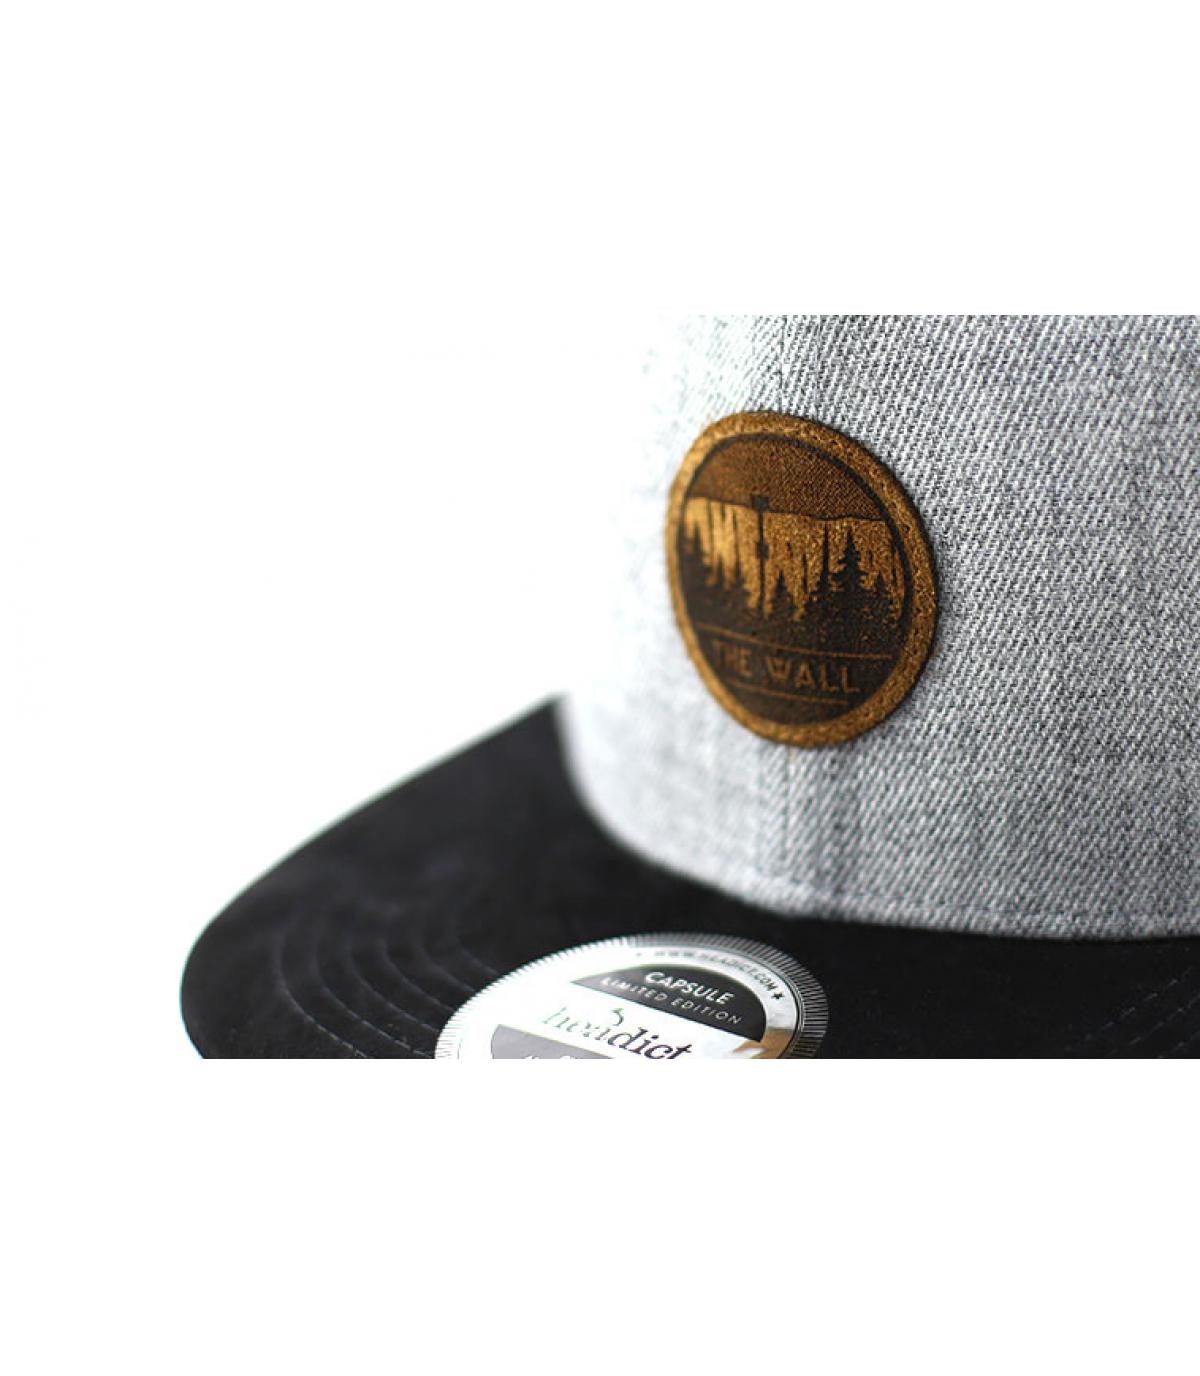 Détails Snapback The Wall grey black - image 3